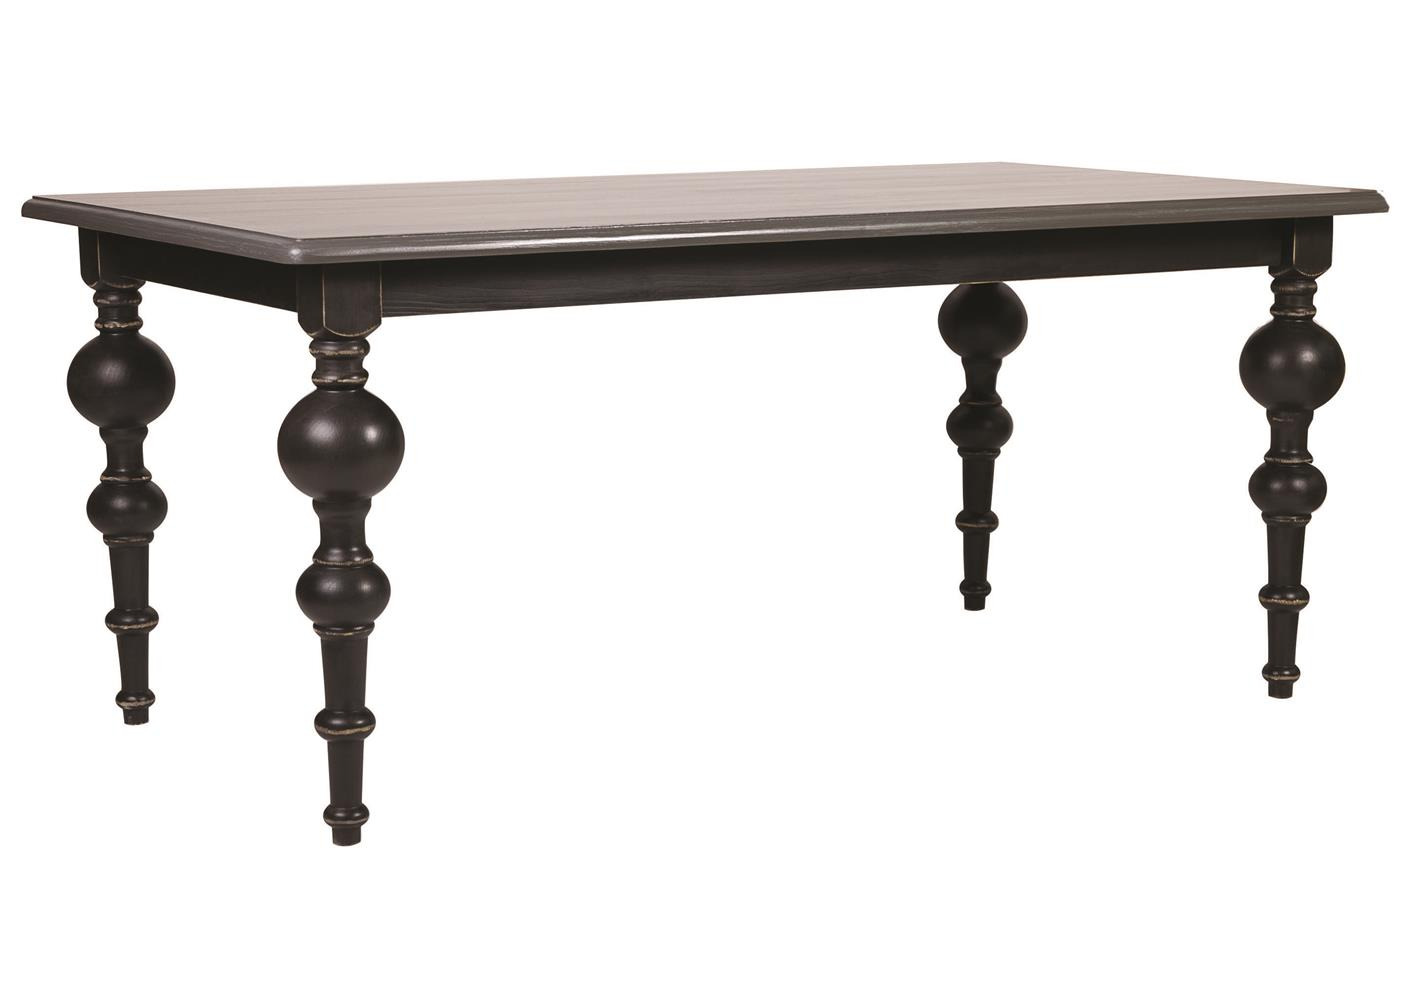 excellent table en pin massif pieds ronds originaux with pieds de table originaux. Black Bedroom Furniture Sets. Home Design Ideas